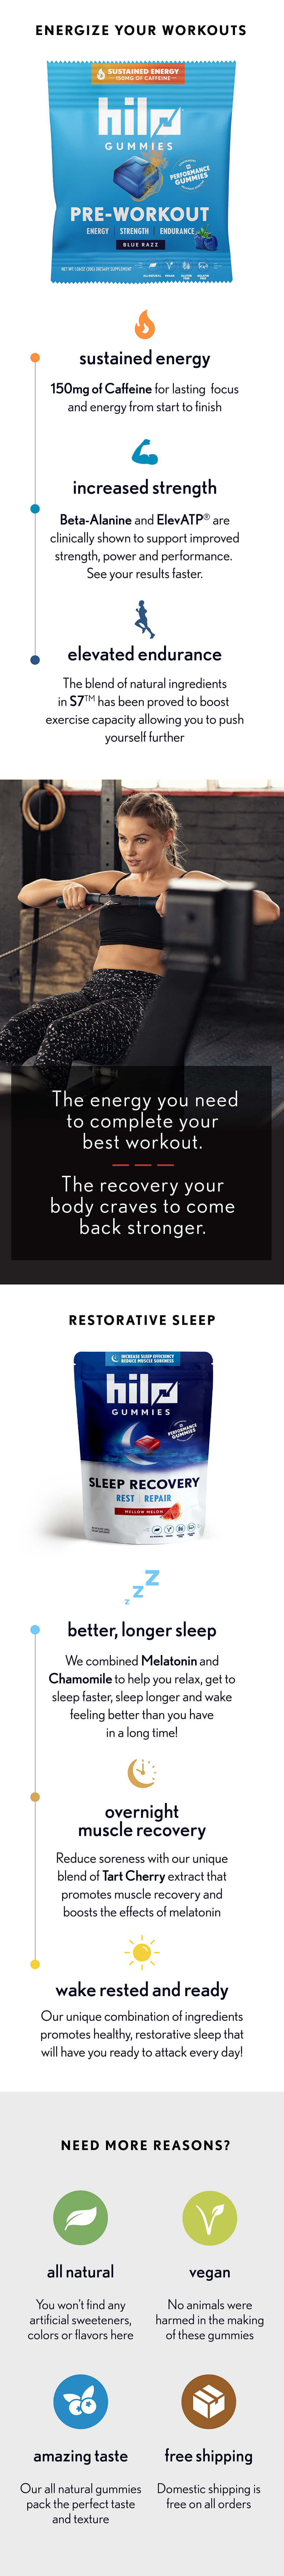 hilo performance gummies energy and sleep bundle. Pre-Workout and Sleep Recovery Gummies in a Money Saving Bundle